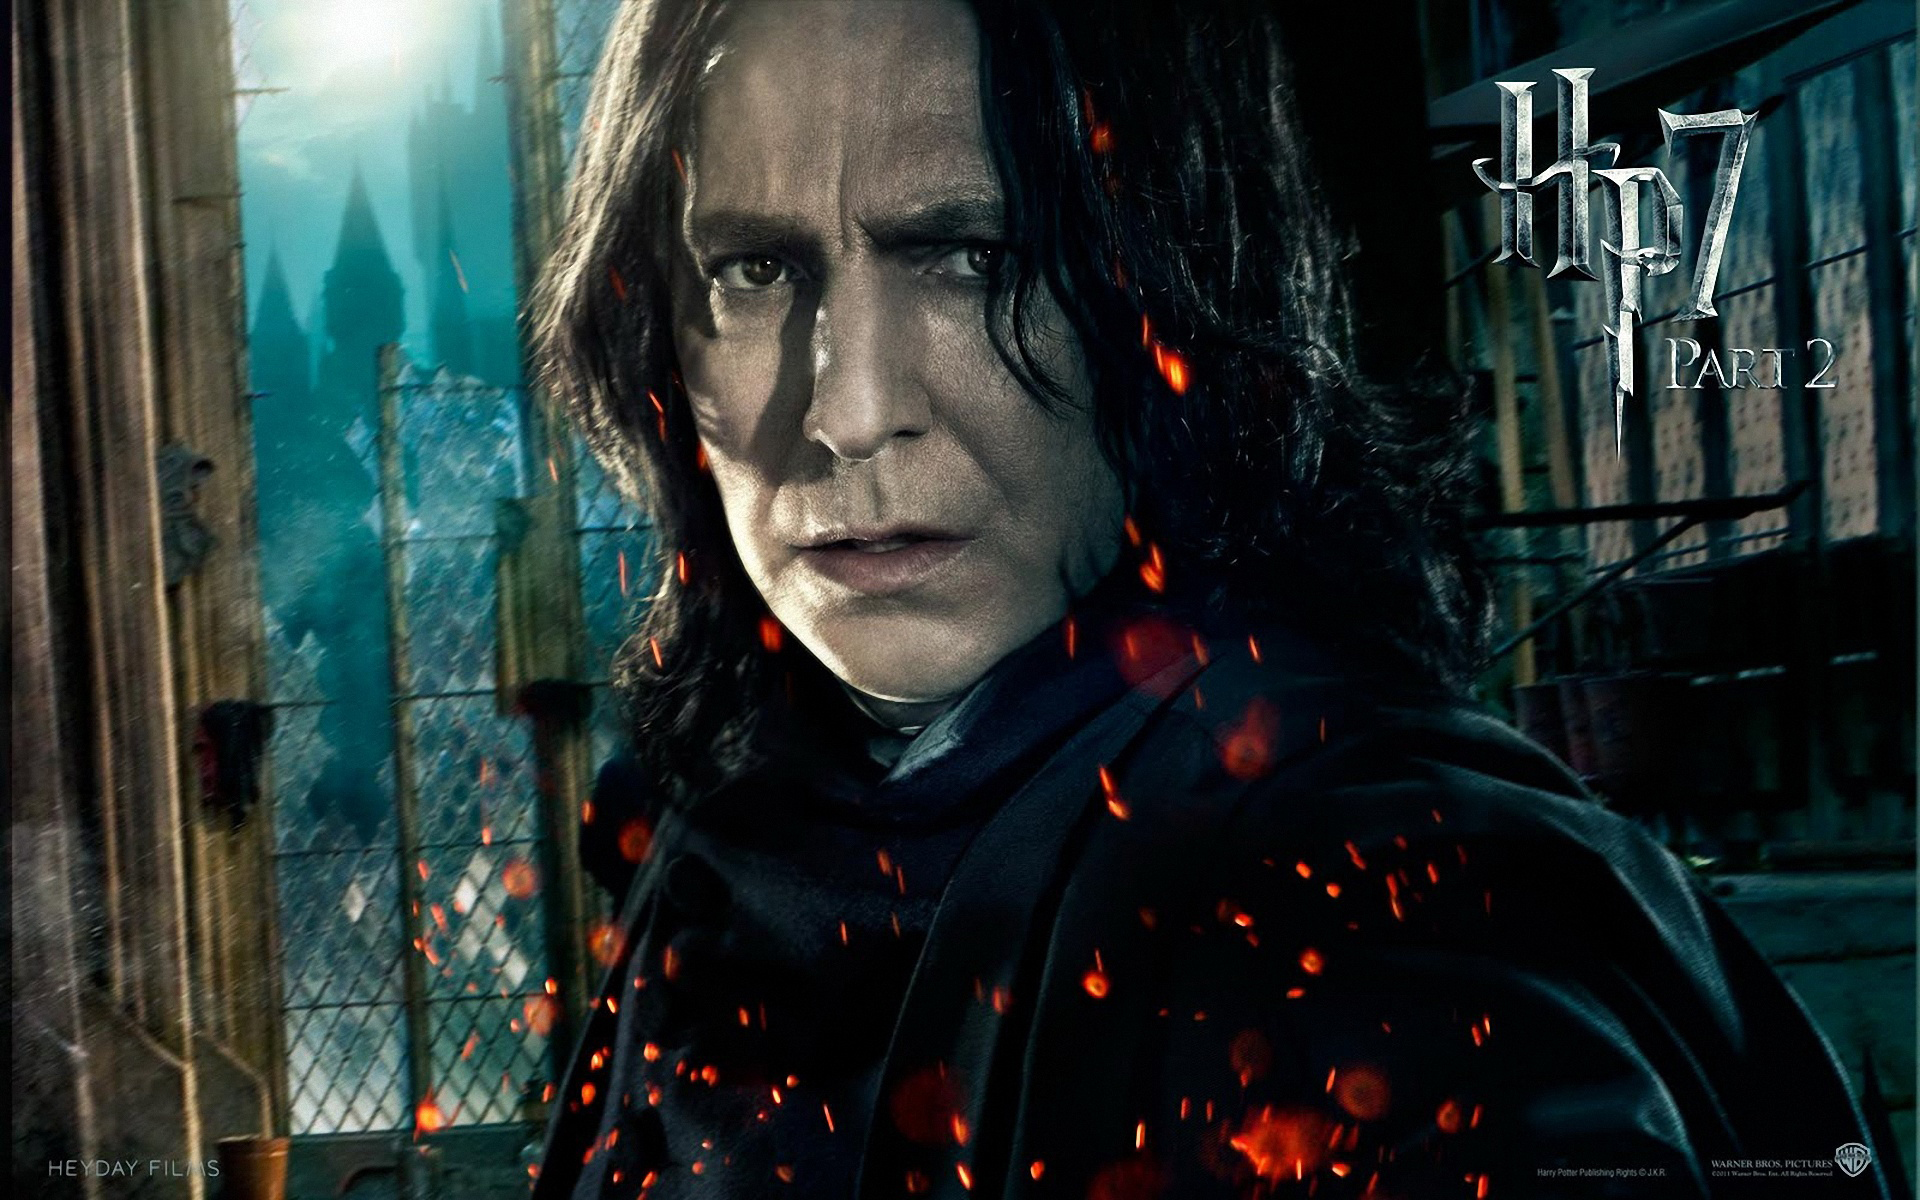 Fantastic Wallpaper Harry Potter Windows 7 - harry-potter-the-deathly-hallows-part-2-wallpaper5  Picture_661094.jpg